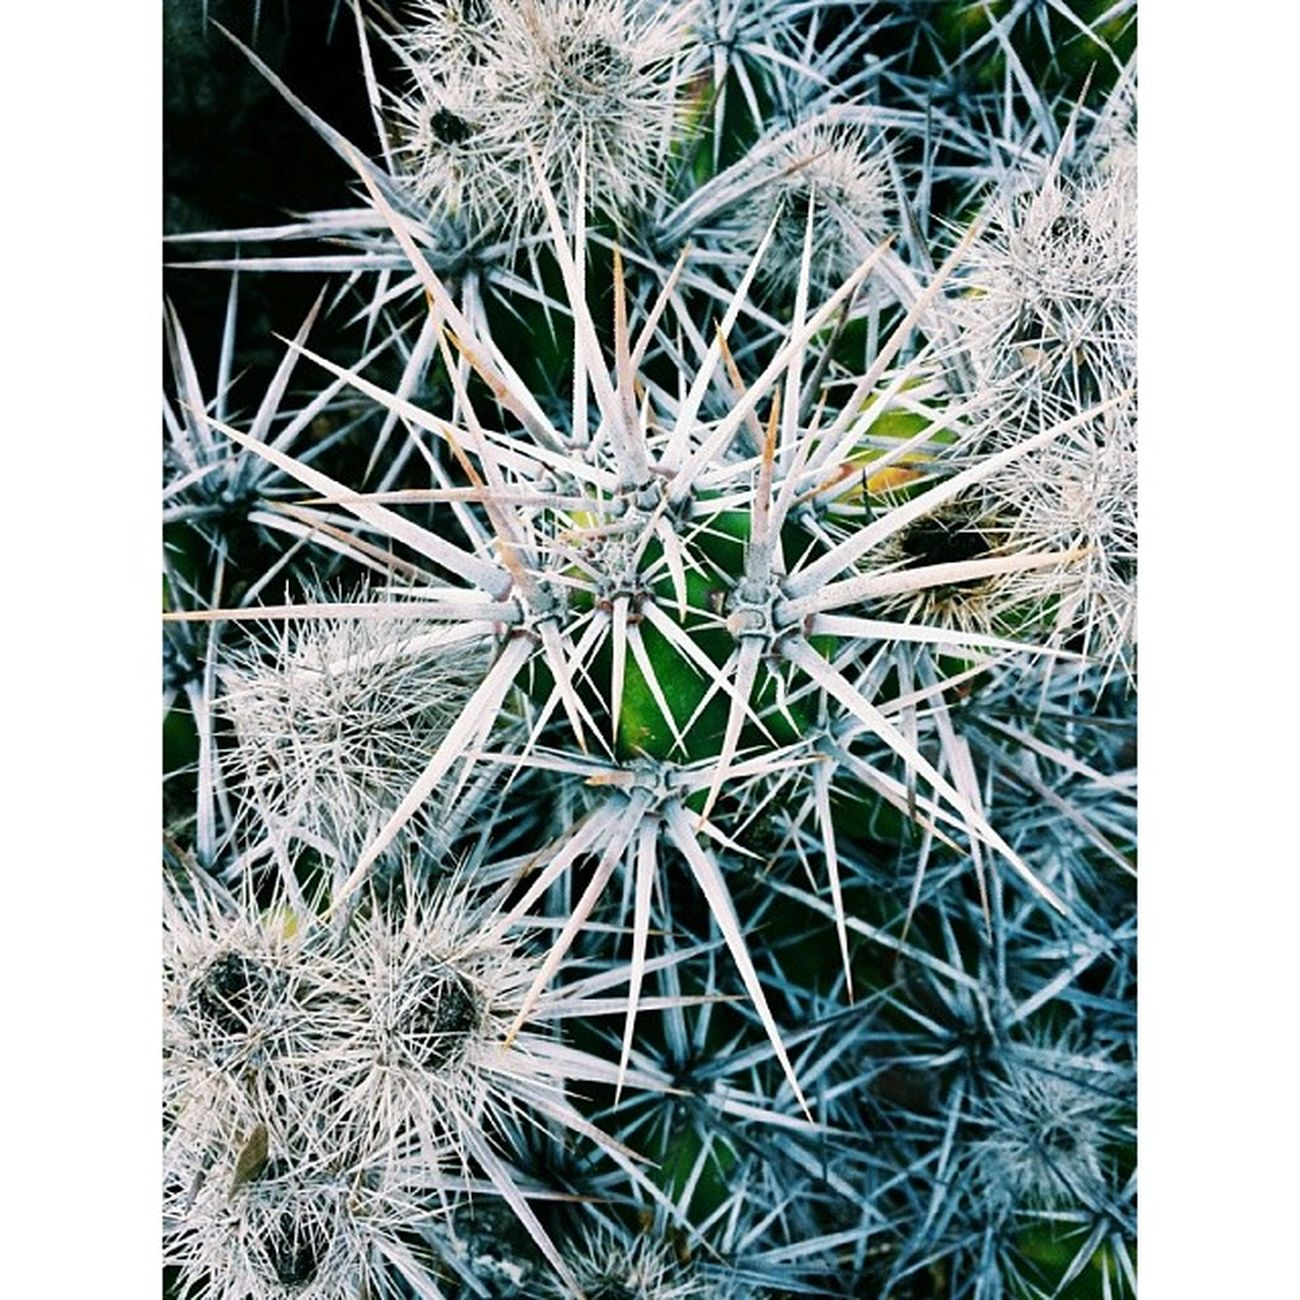 It's a tiny city Pricks  Cactus Cacti Plants plantlife pattern nature naturelover